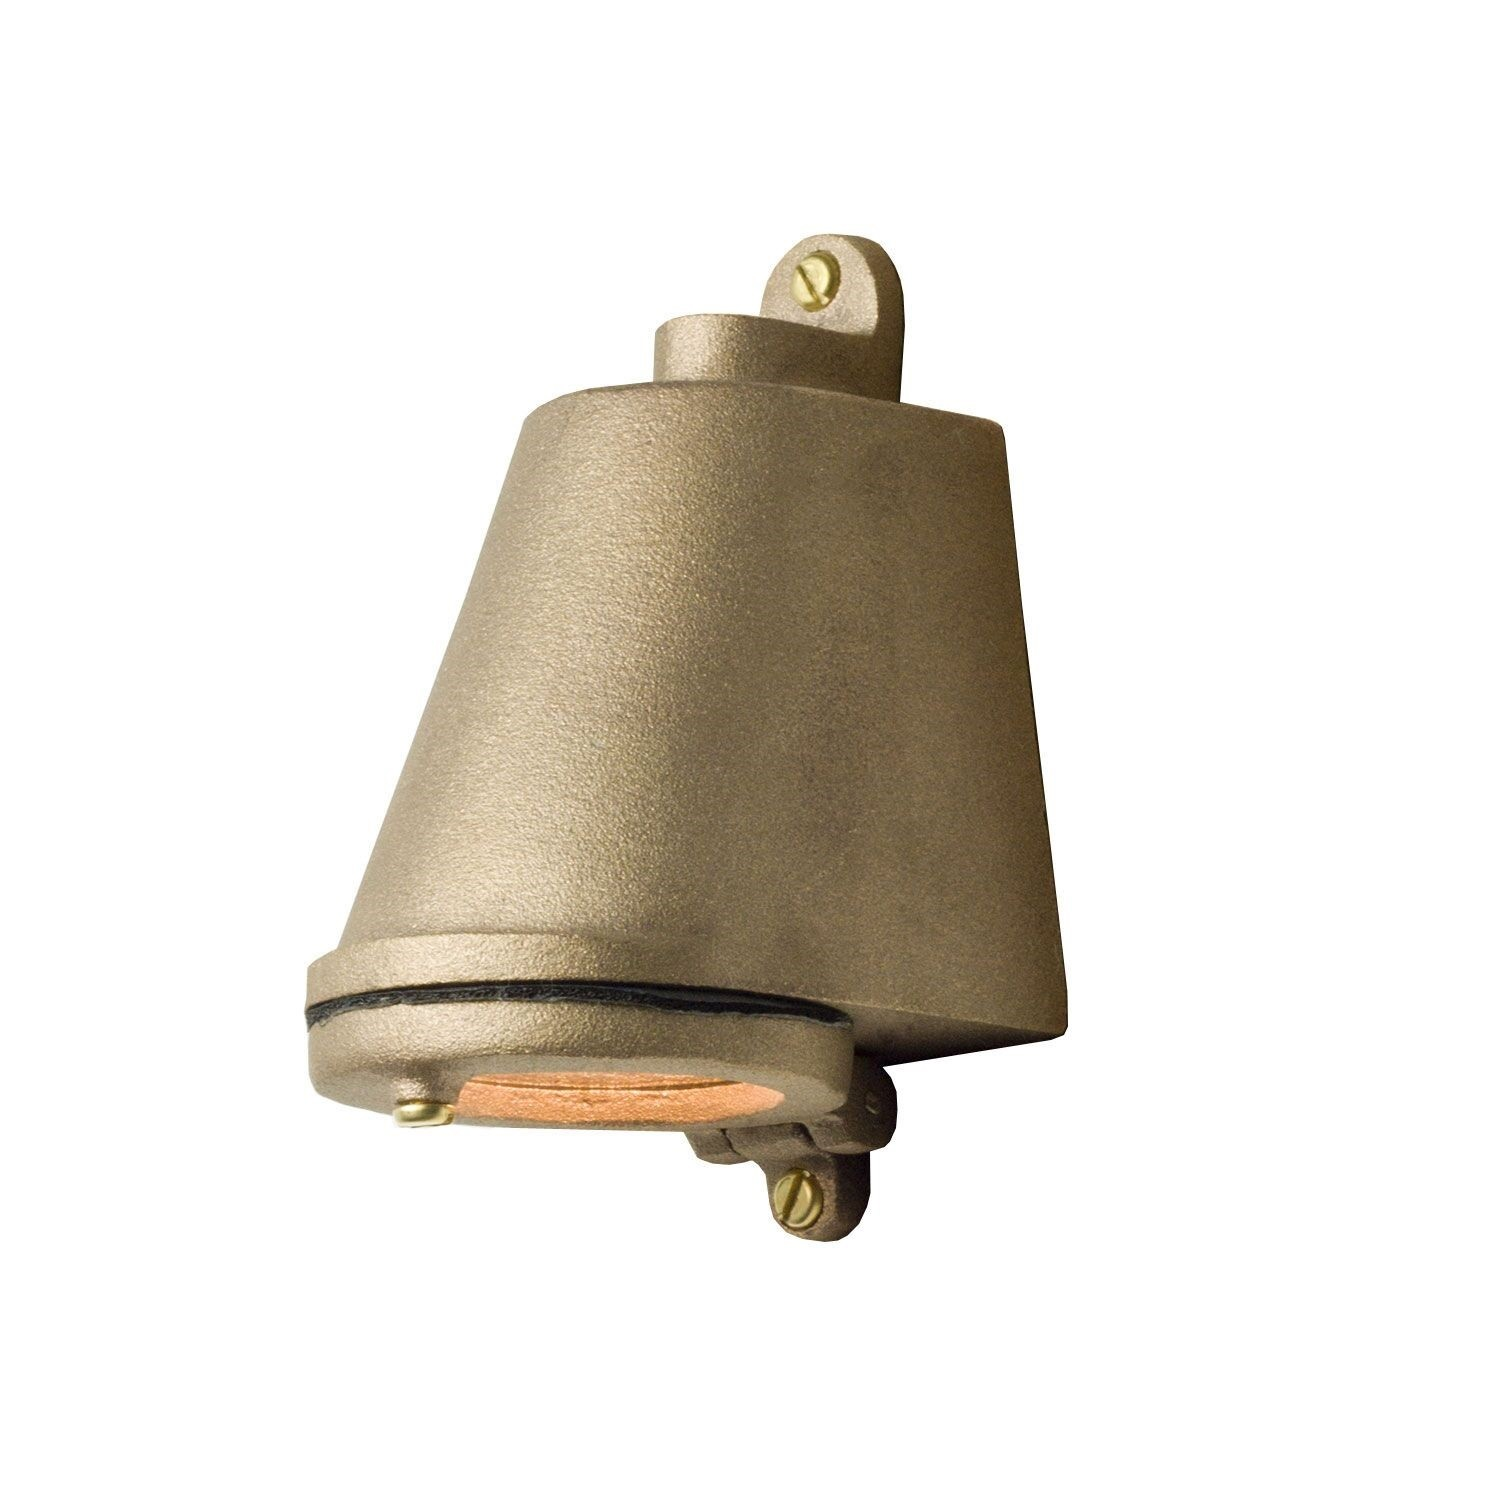 Mast Light 0751 Sandblasted Bronze